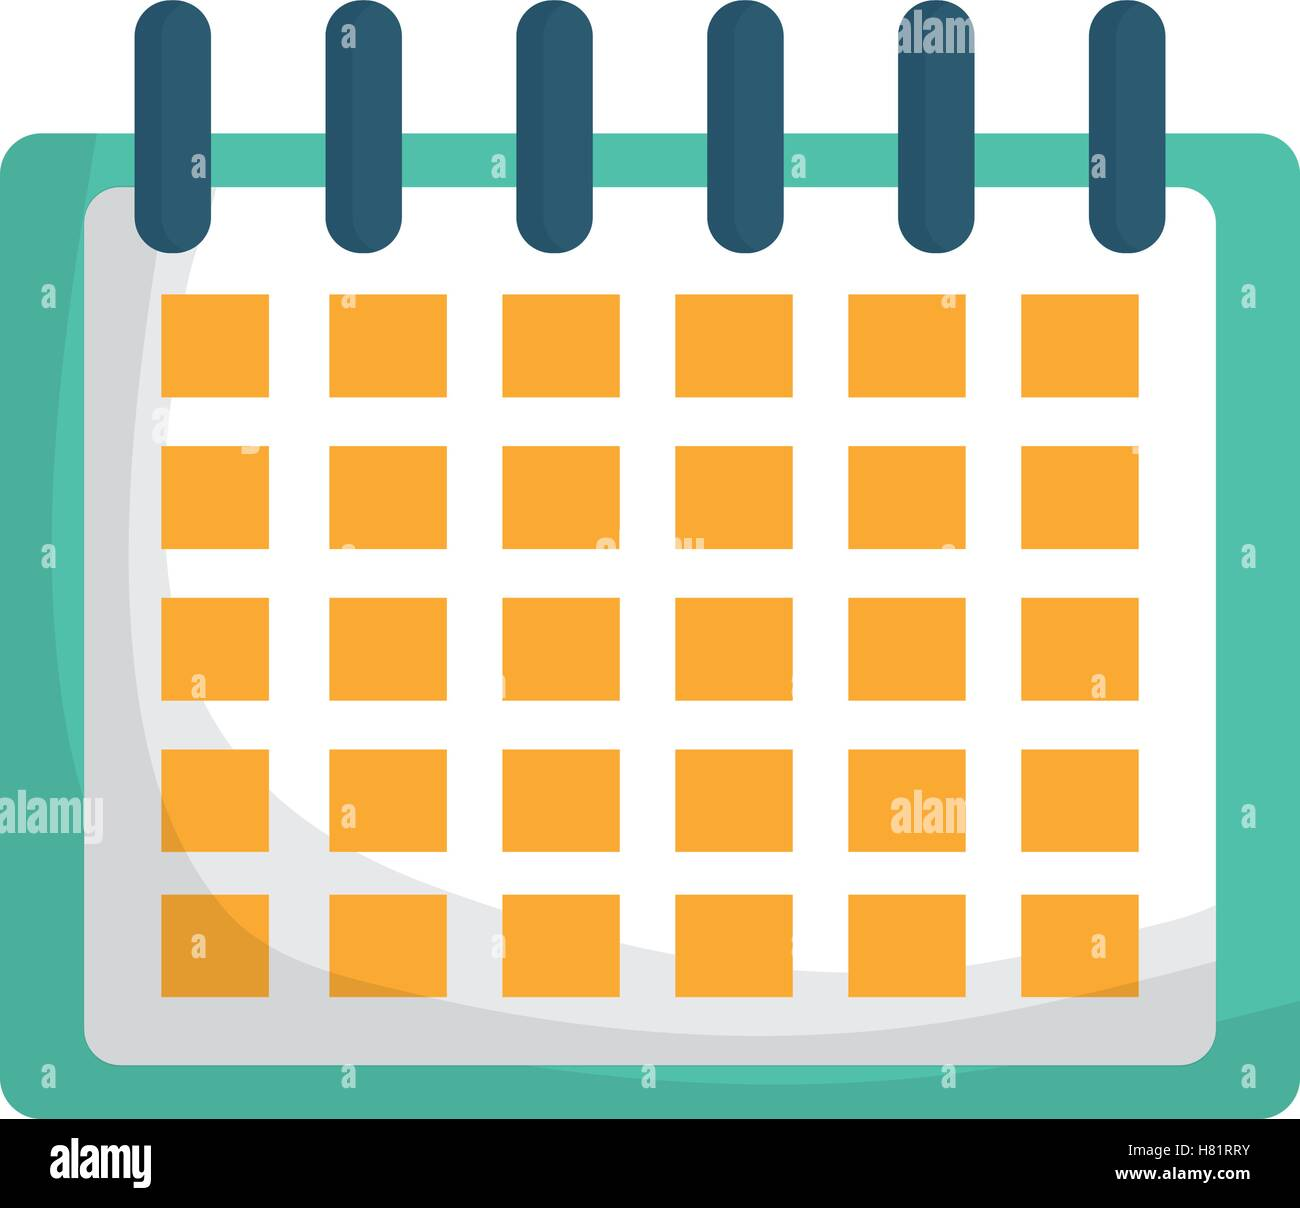 calendar icon planner month date and time theme isolated design